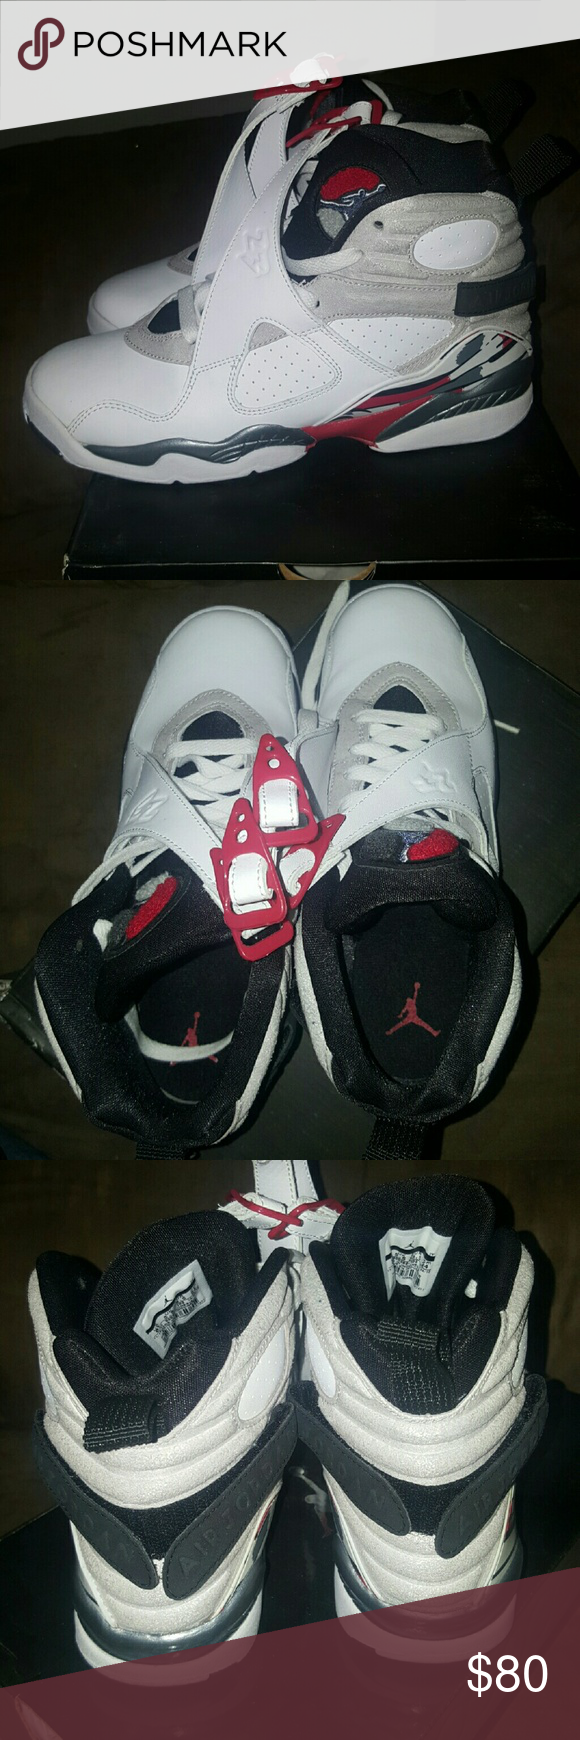 Air Jordan 8 Retro - white/black/true red Condition as in photos. Only worn once. Like new. Smoke and pet free home in box. Jordan Shoes Sneakers